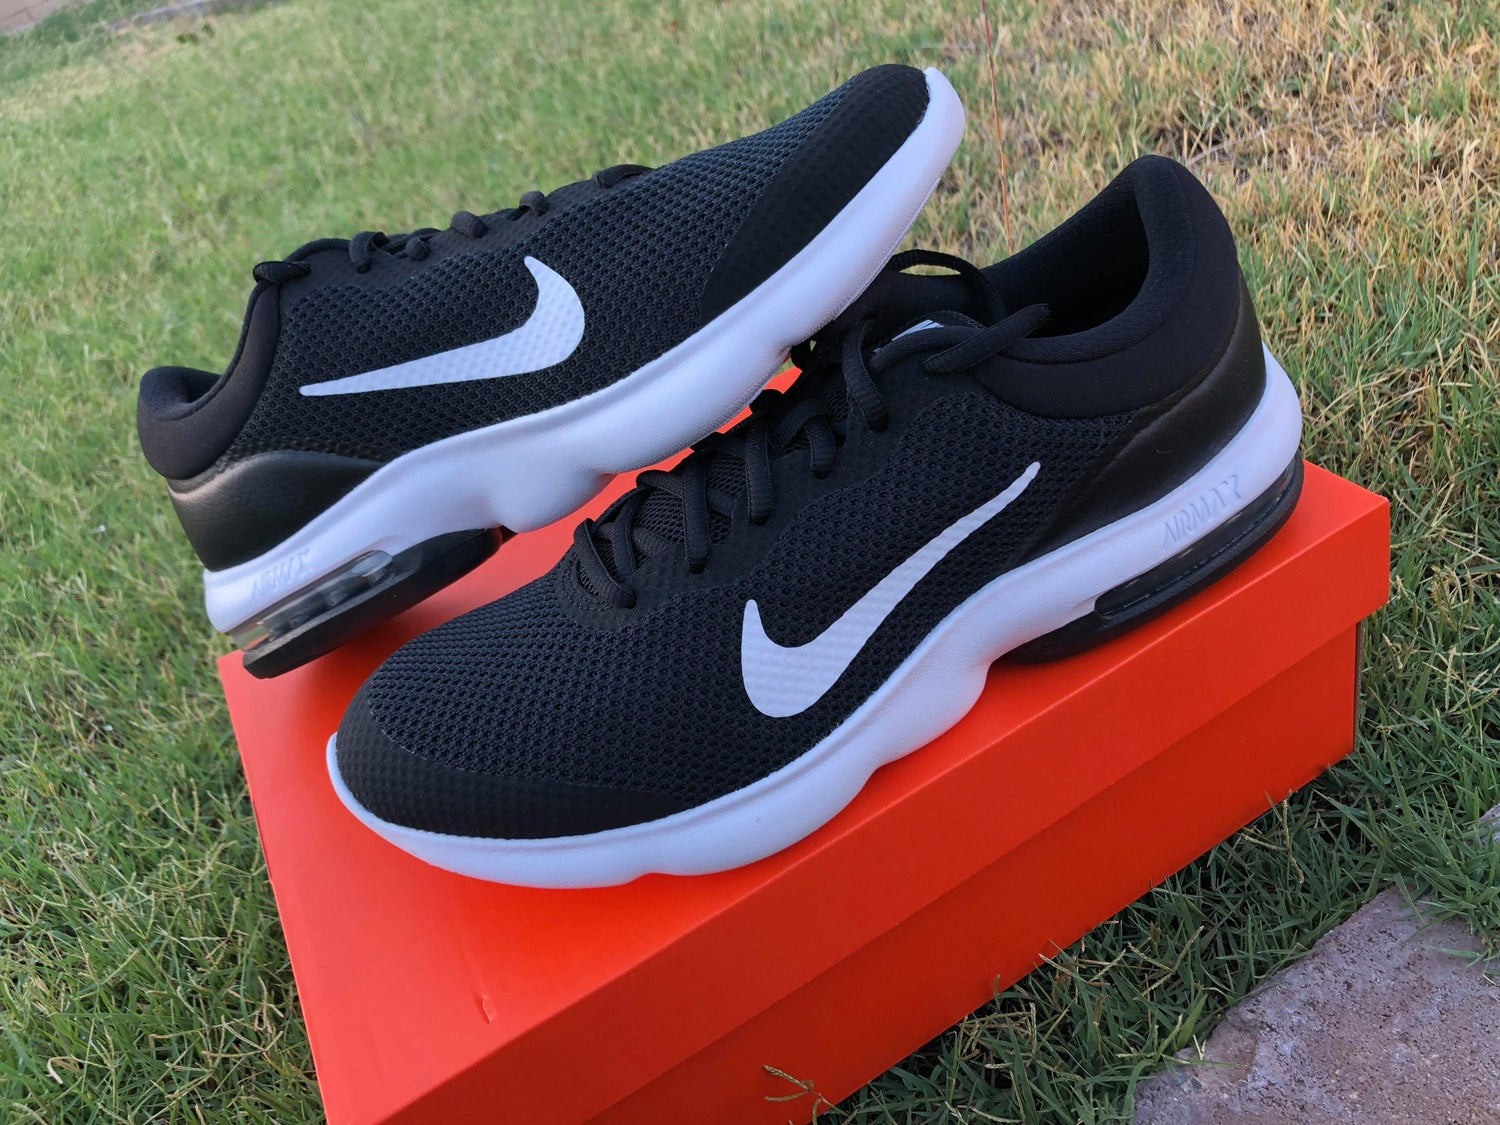 san francisco ab8f9 91cd4 Image of Nike Air Max Advantage Mens Running Shoe - Black  White